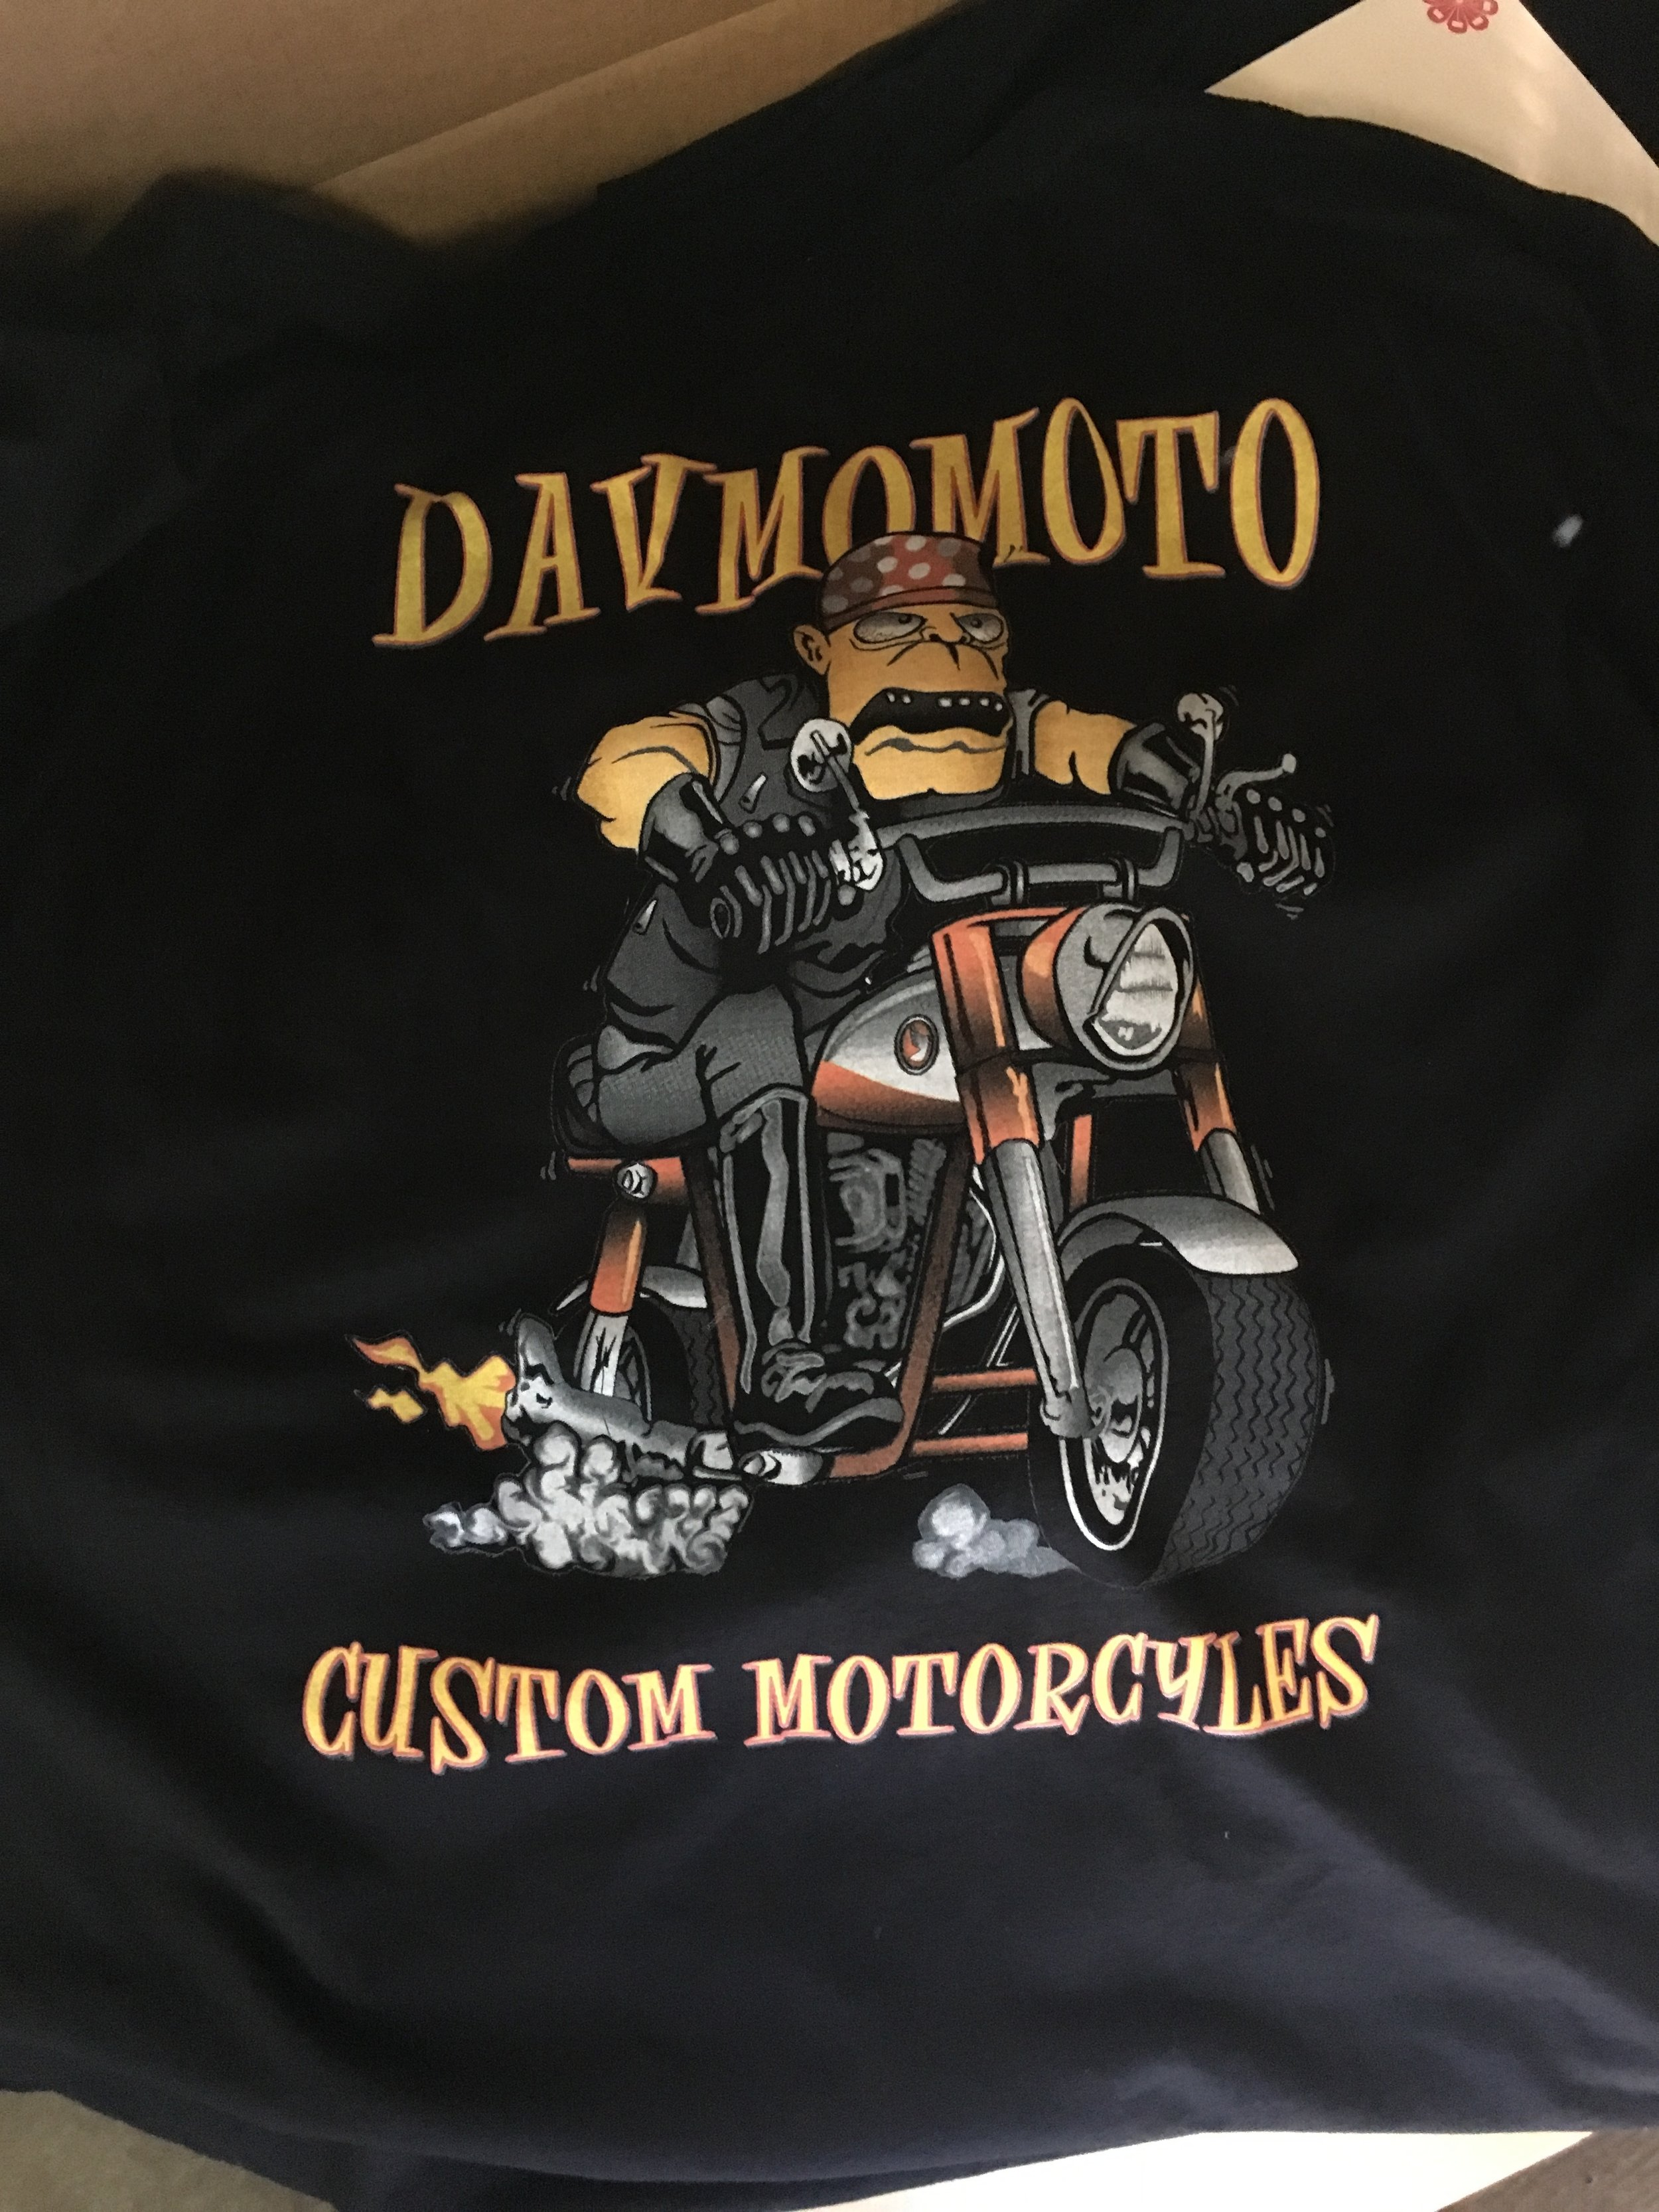 Got the 100% cotton Davmomoto shirts from local screen printer Norman Roscoe. Available in limited quantities.